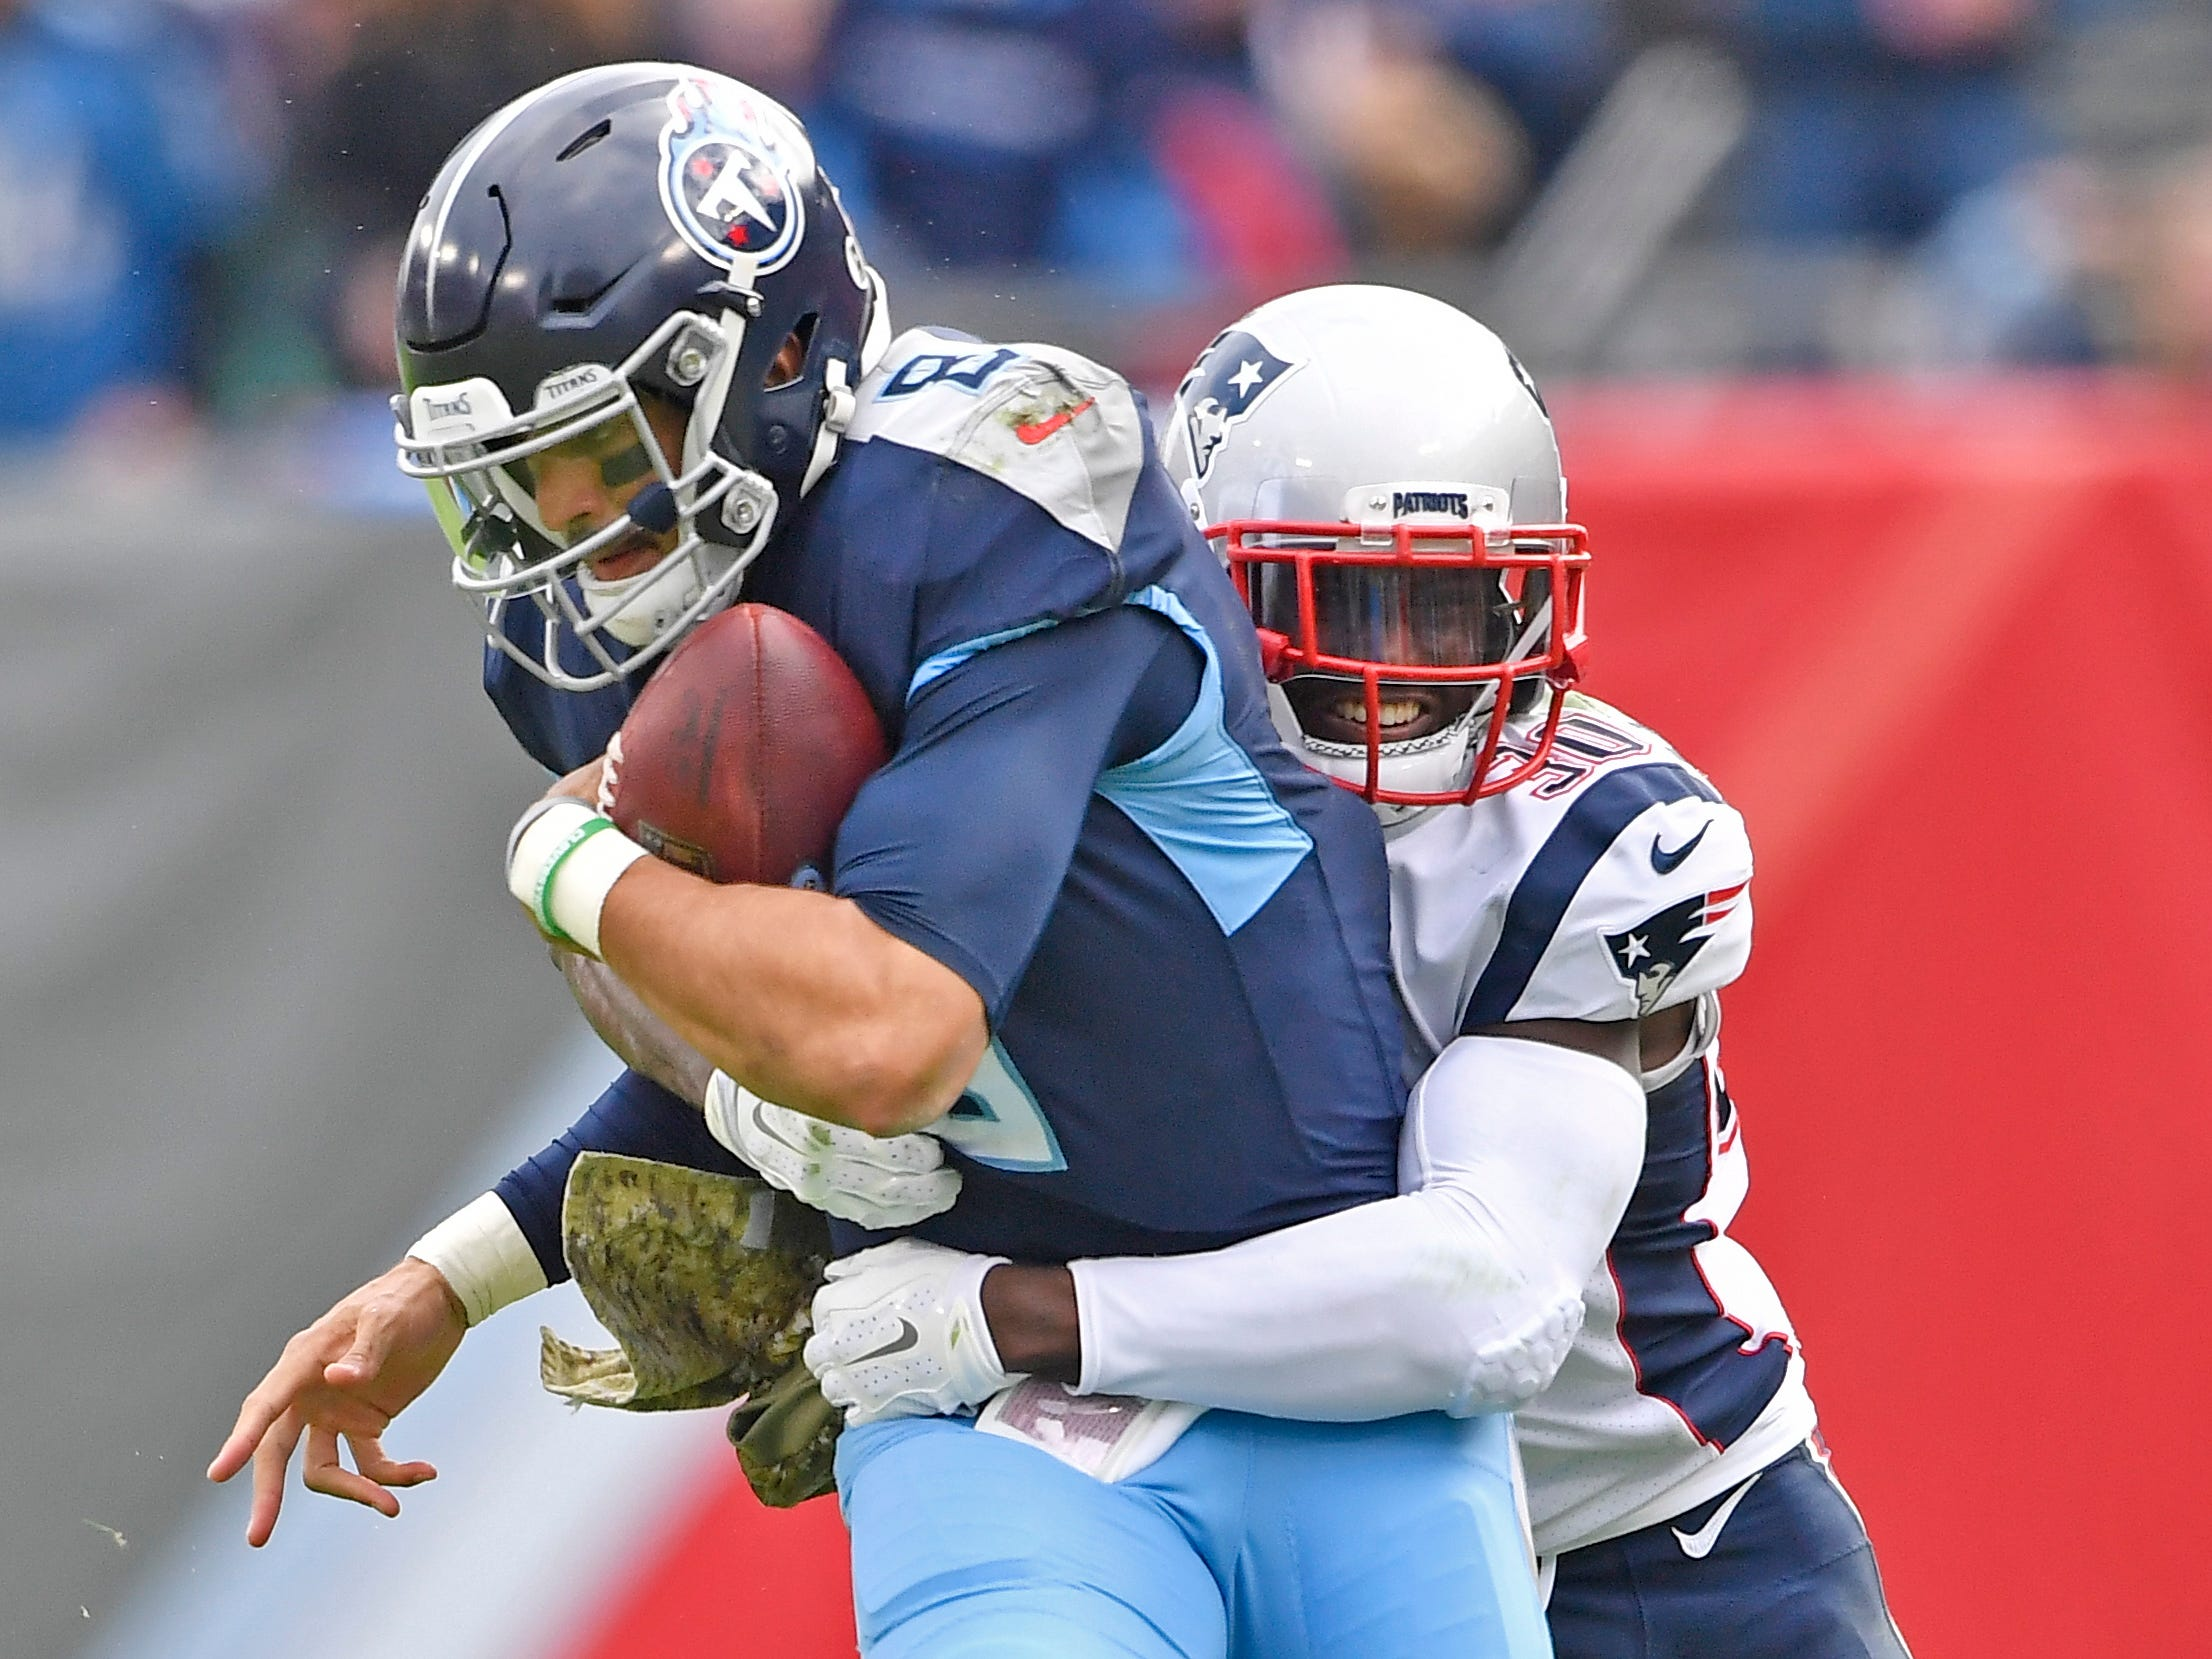 Titans quarterback Marcus Mariota (8) pulls in a catch from wide receiver Darius Jennings (15) and is stopped by Patriots cornerback Jason McCourty (30) in the second half at Nissan Stadium Sunday, Nov. 11, 2018, in Nashville, Tenn.